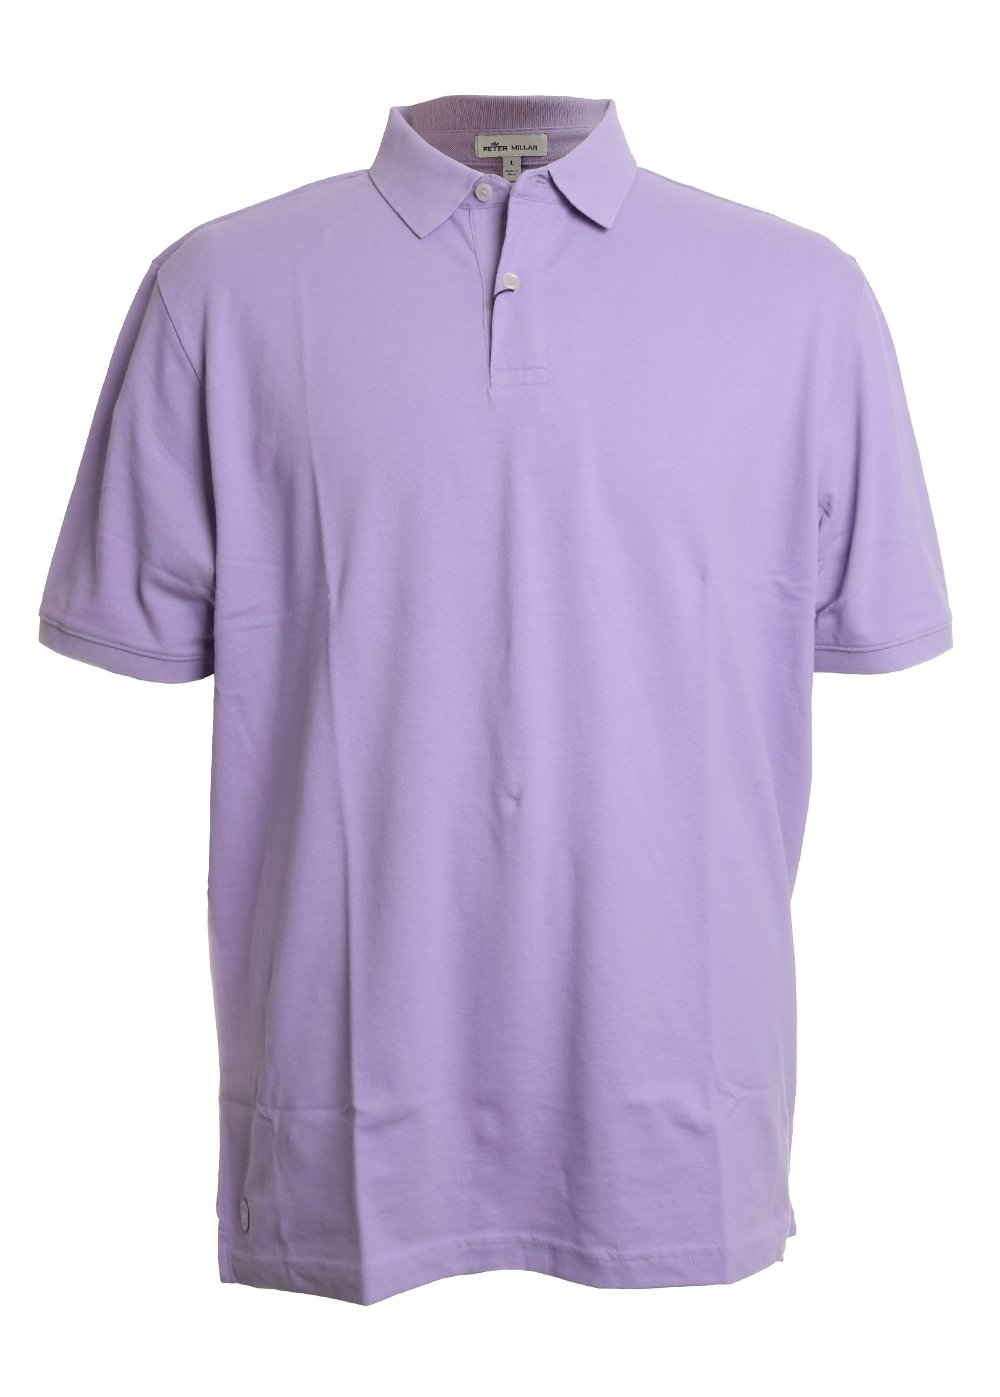 Crown Classic Pique Cotton Polo Shirt